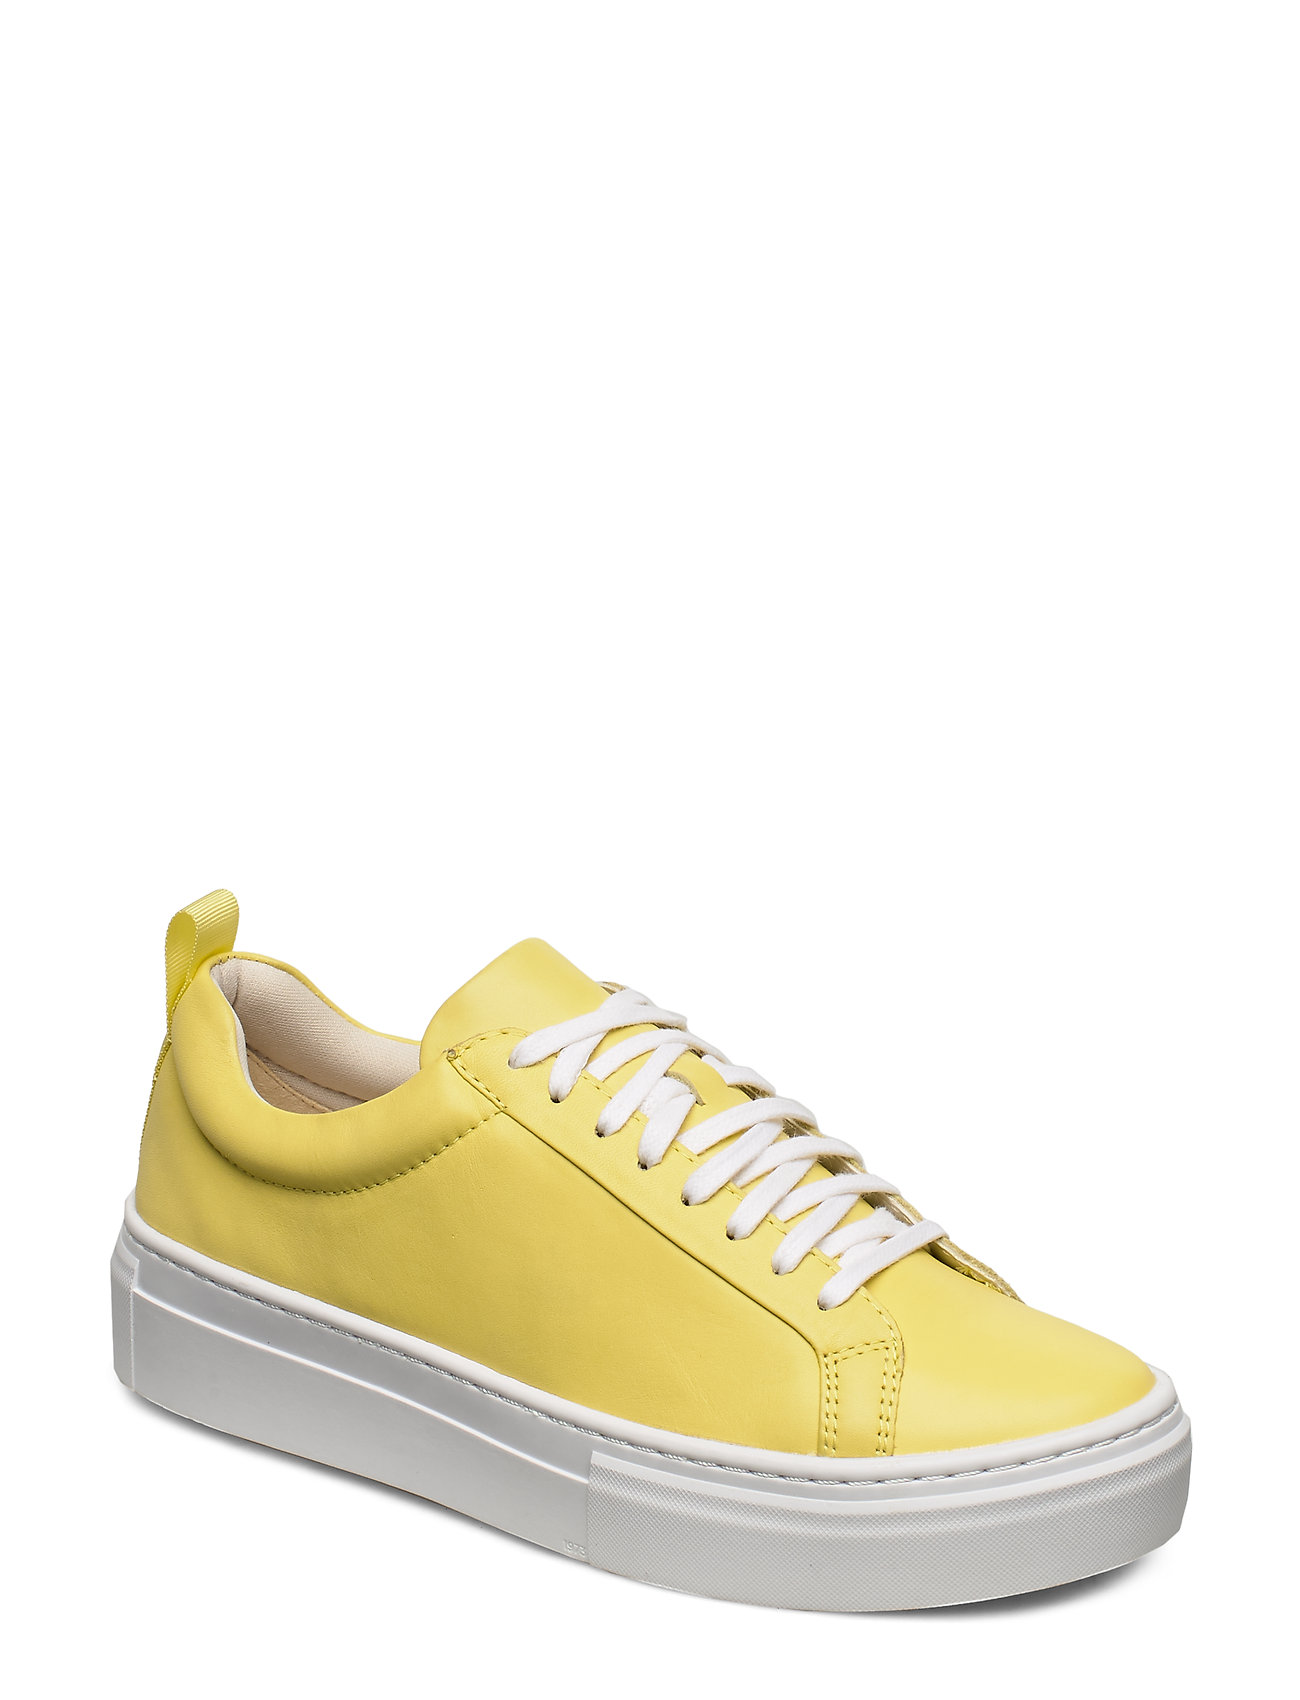 Image of Zoe Platform Low-top Sneakers Gul VAGABOND (3307692297)